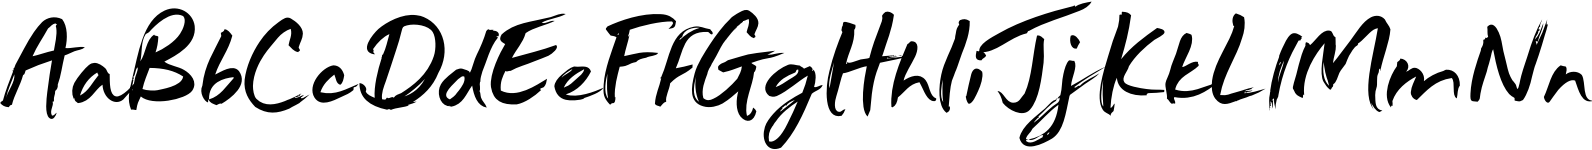 Just Wright Font